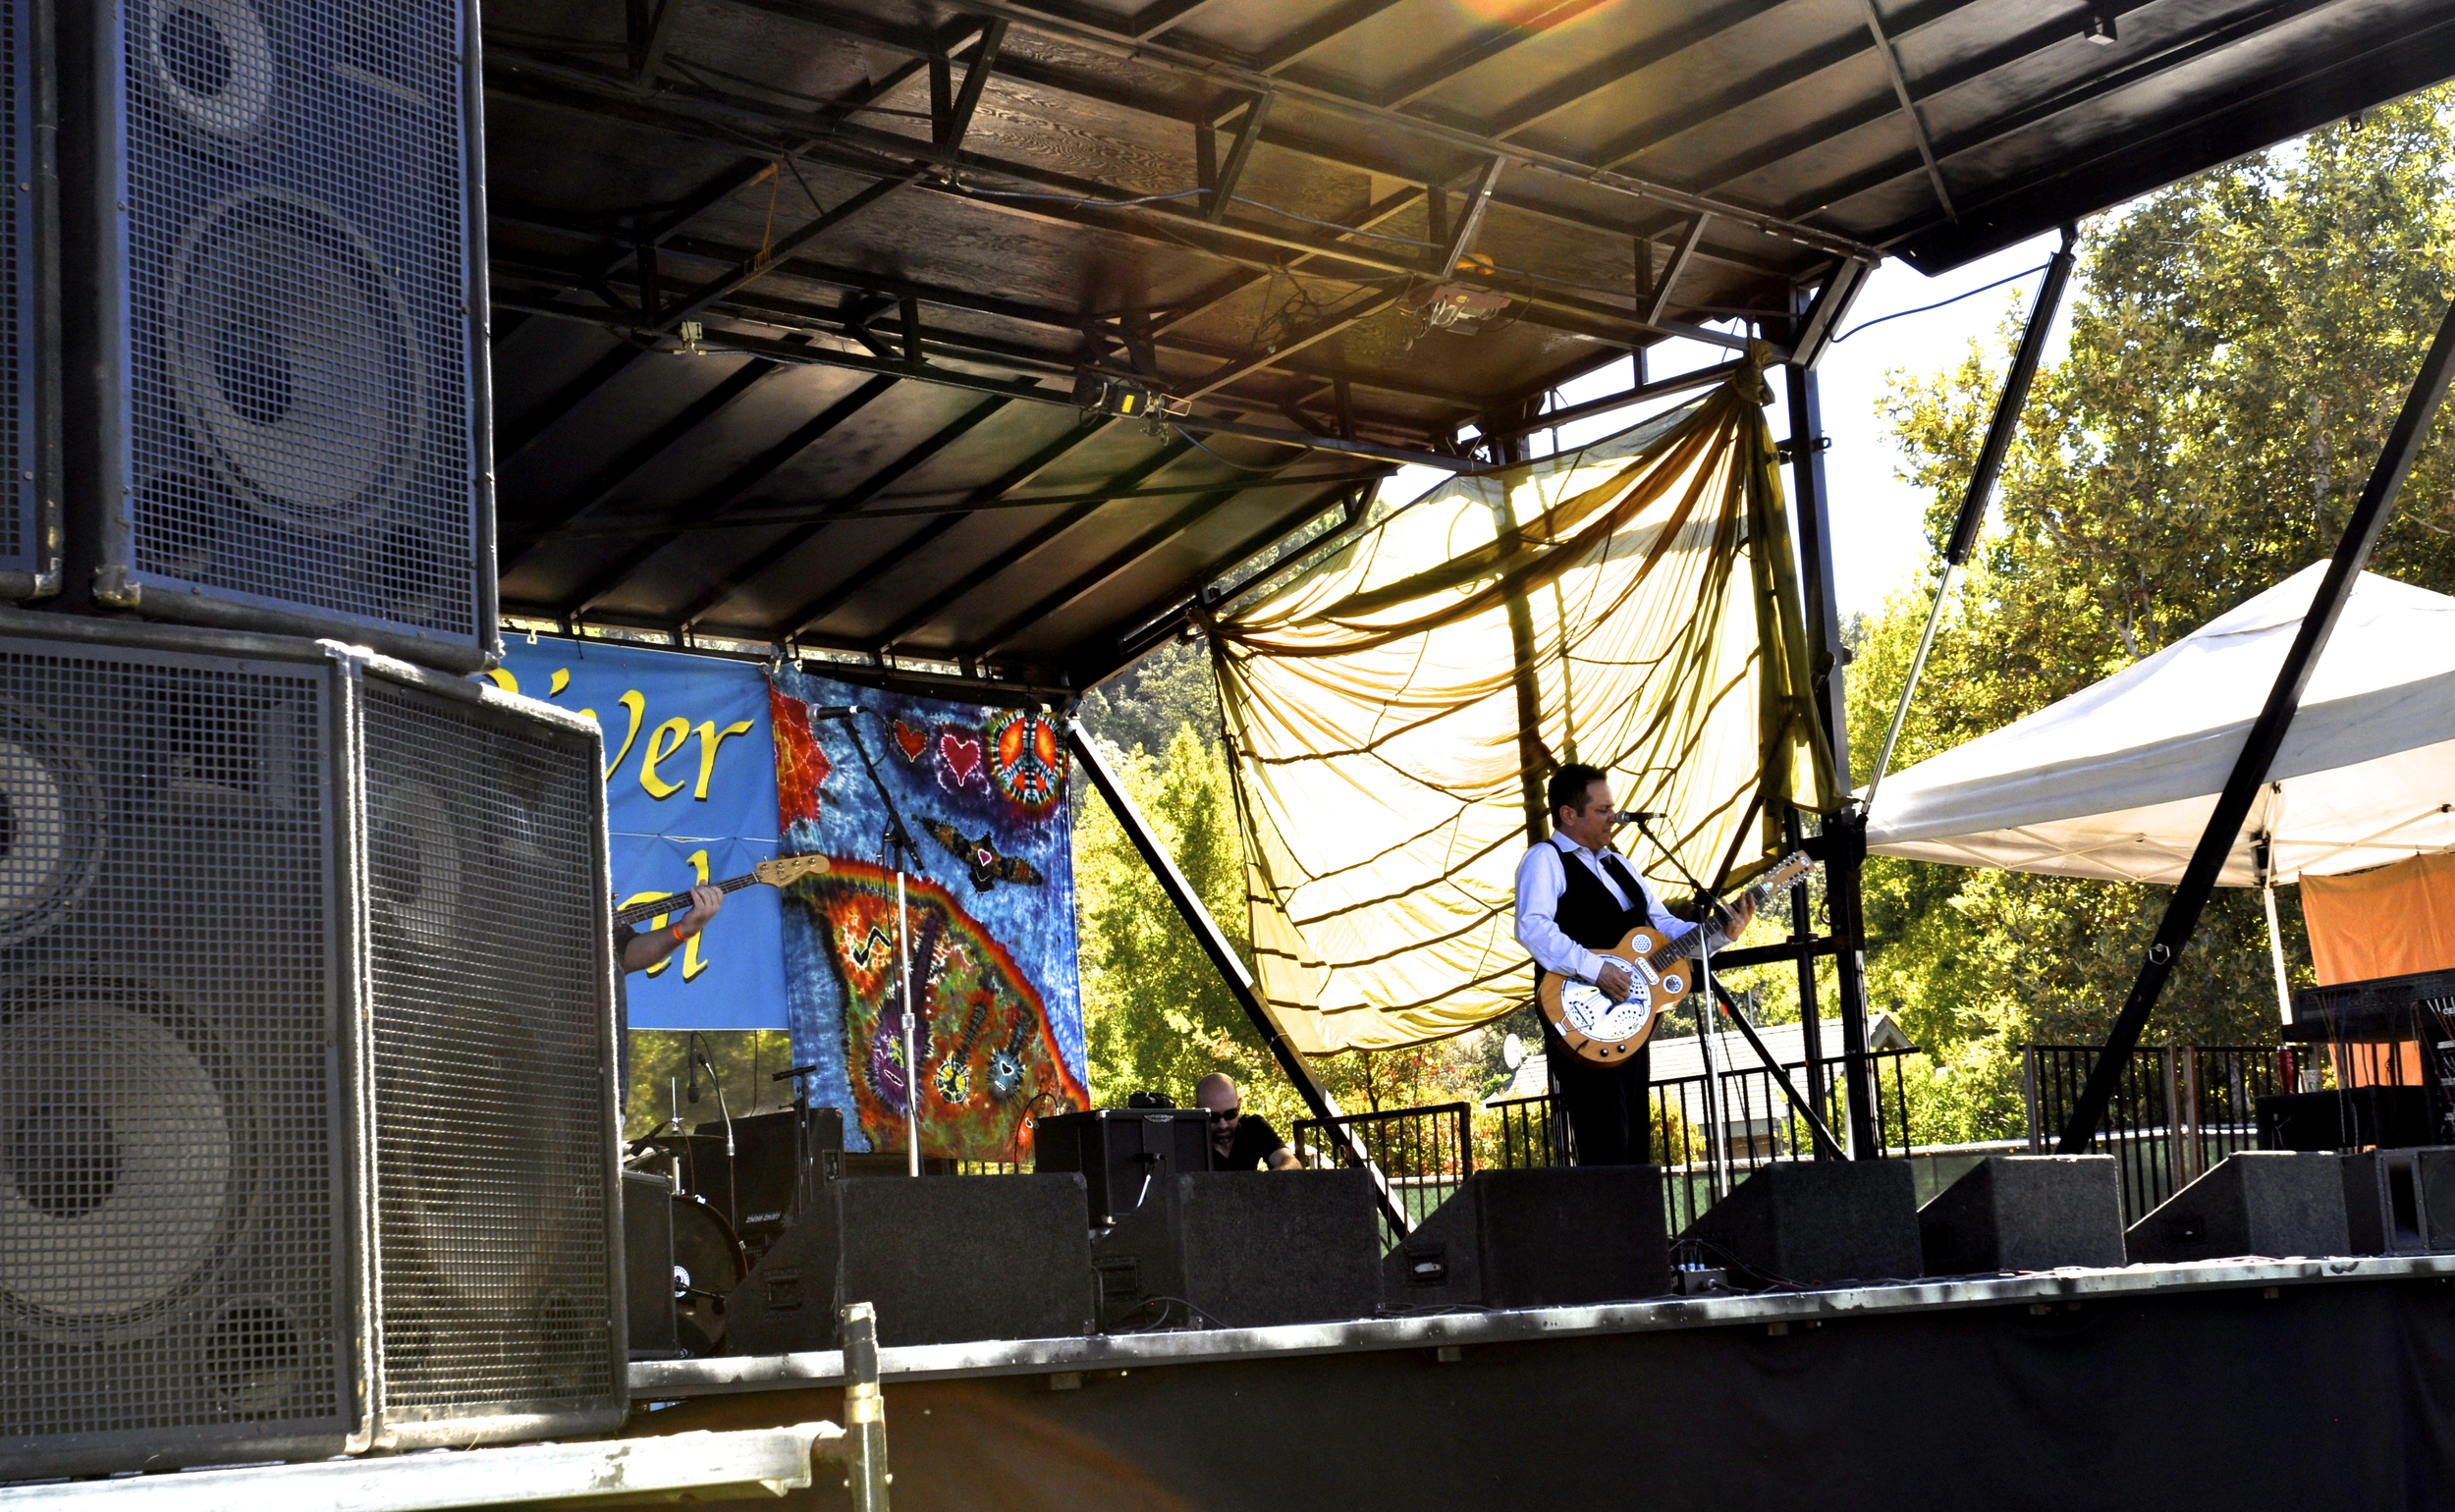 Dennis Johnson on stage at the Amercian RIver Music Festival